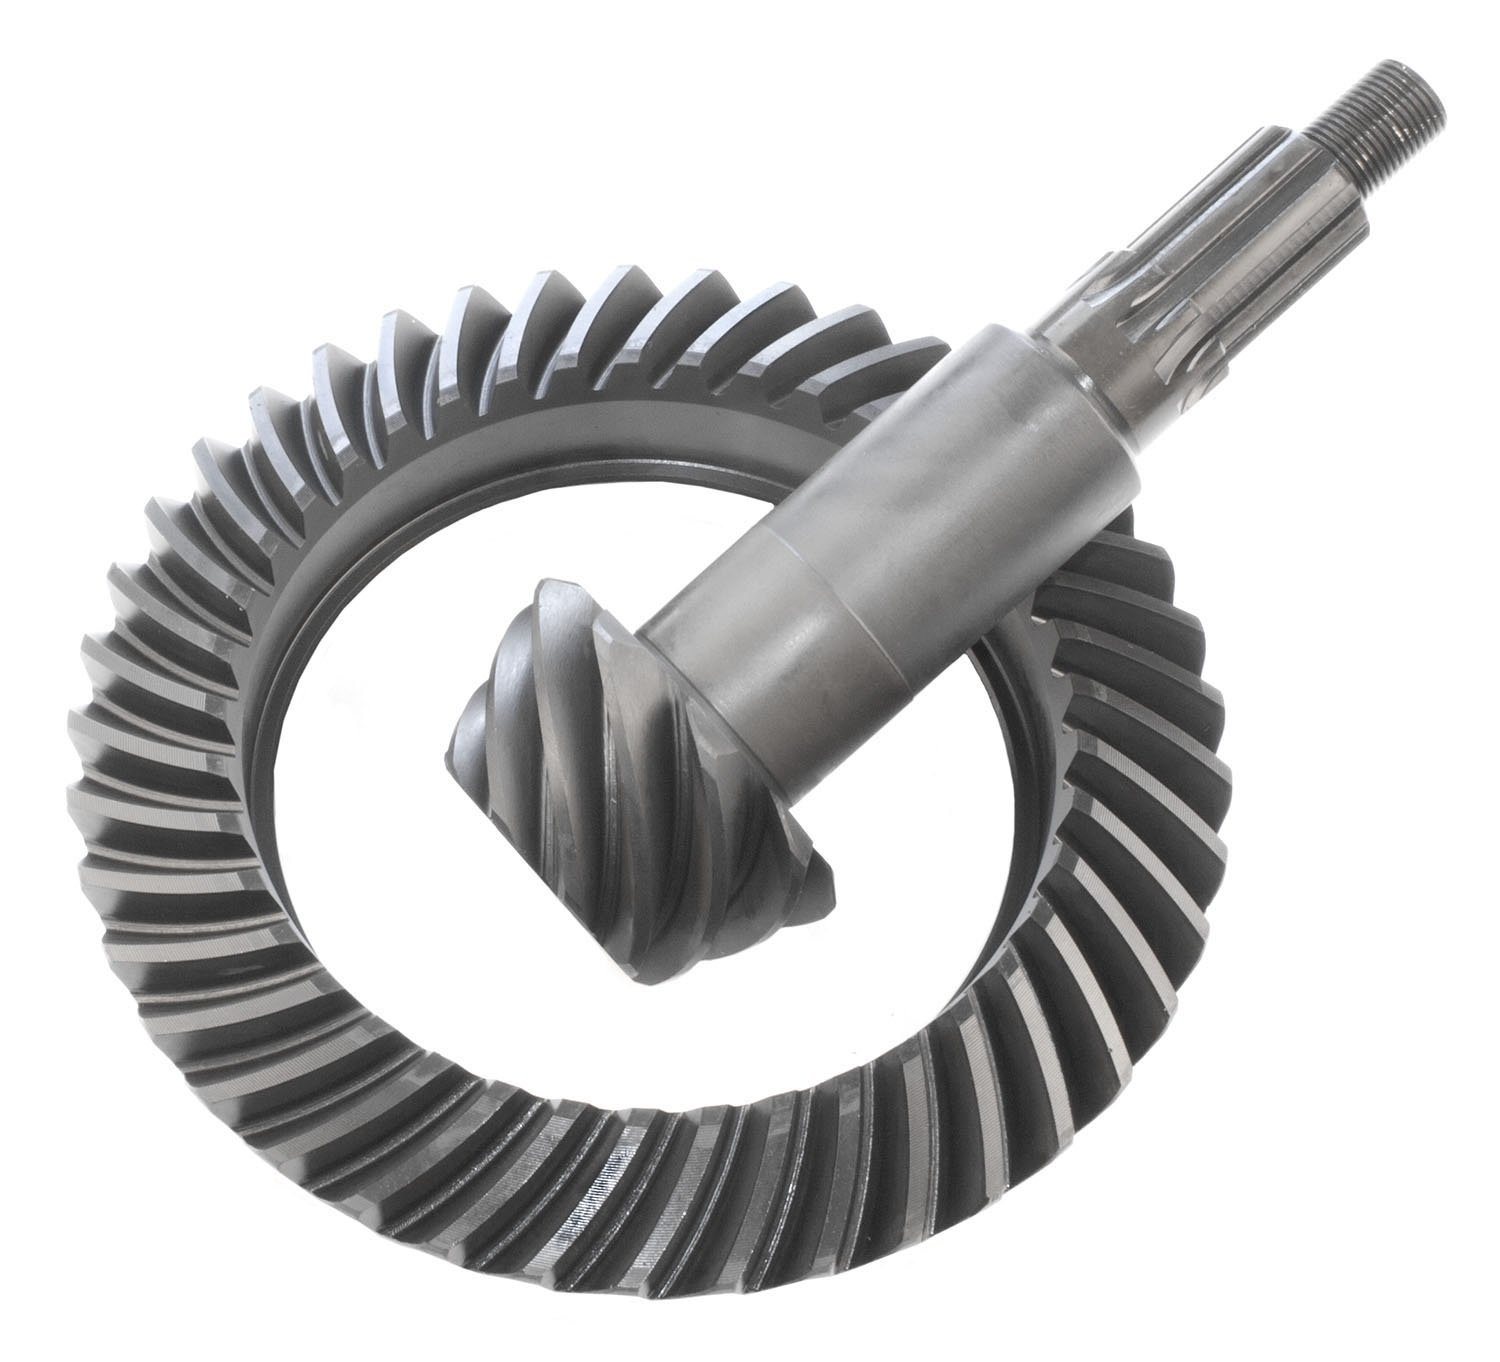 Richmond Gear 69-0047-1 Ring and Pinion Chrysler 8.75'' 4.57 Early 1, 1 Pack